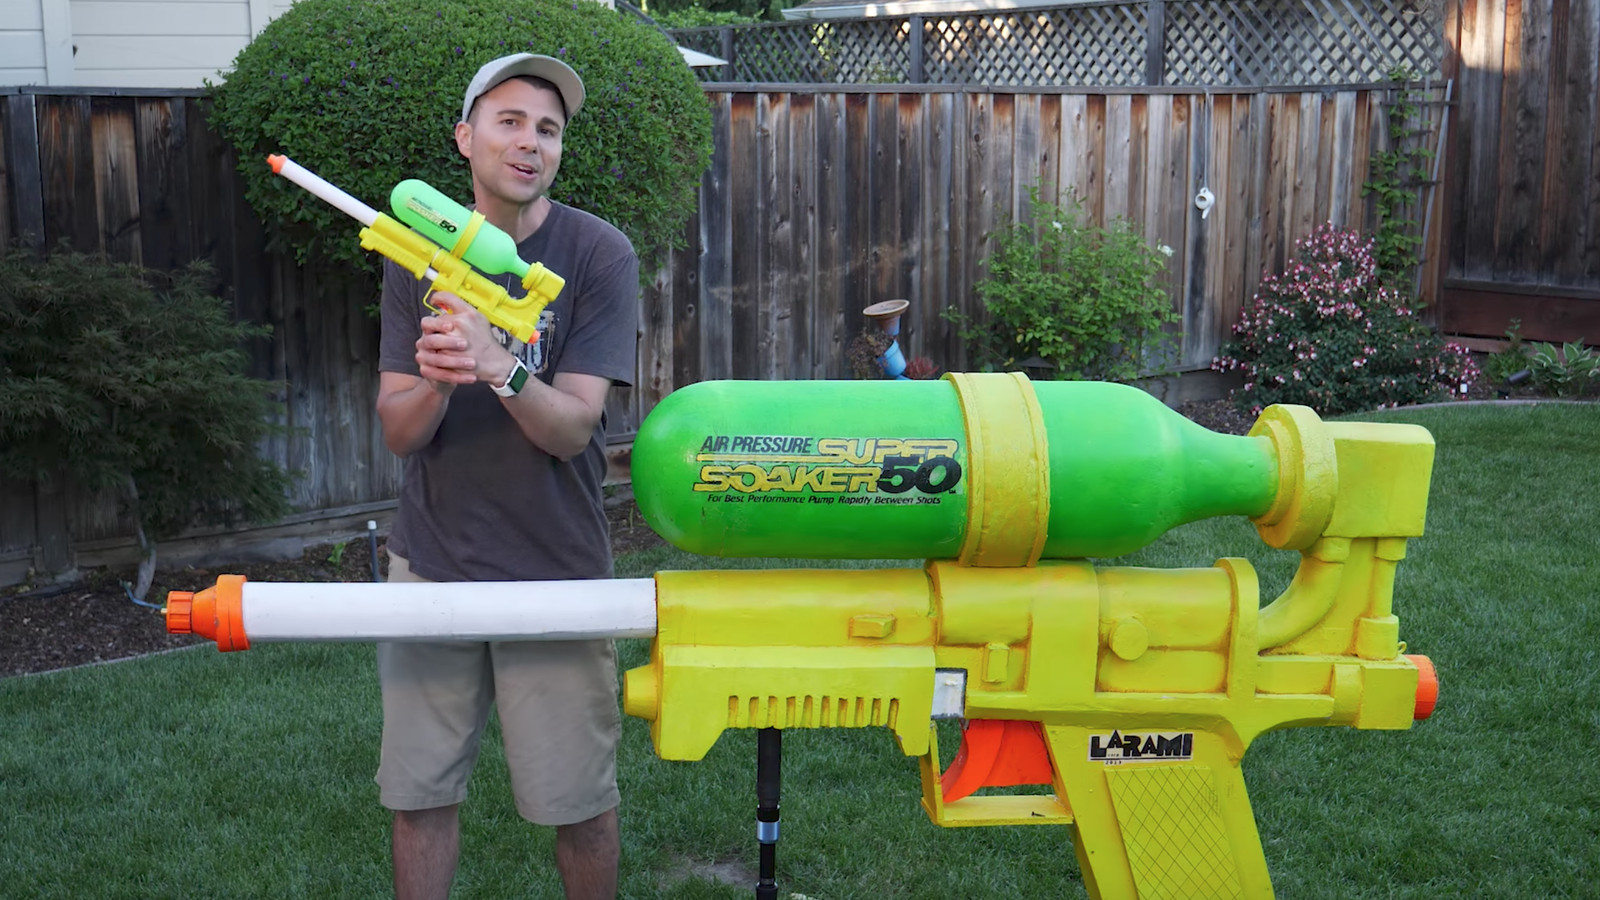 Worlds Largest Super Soaker